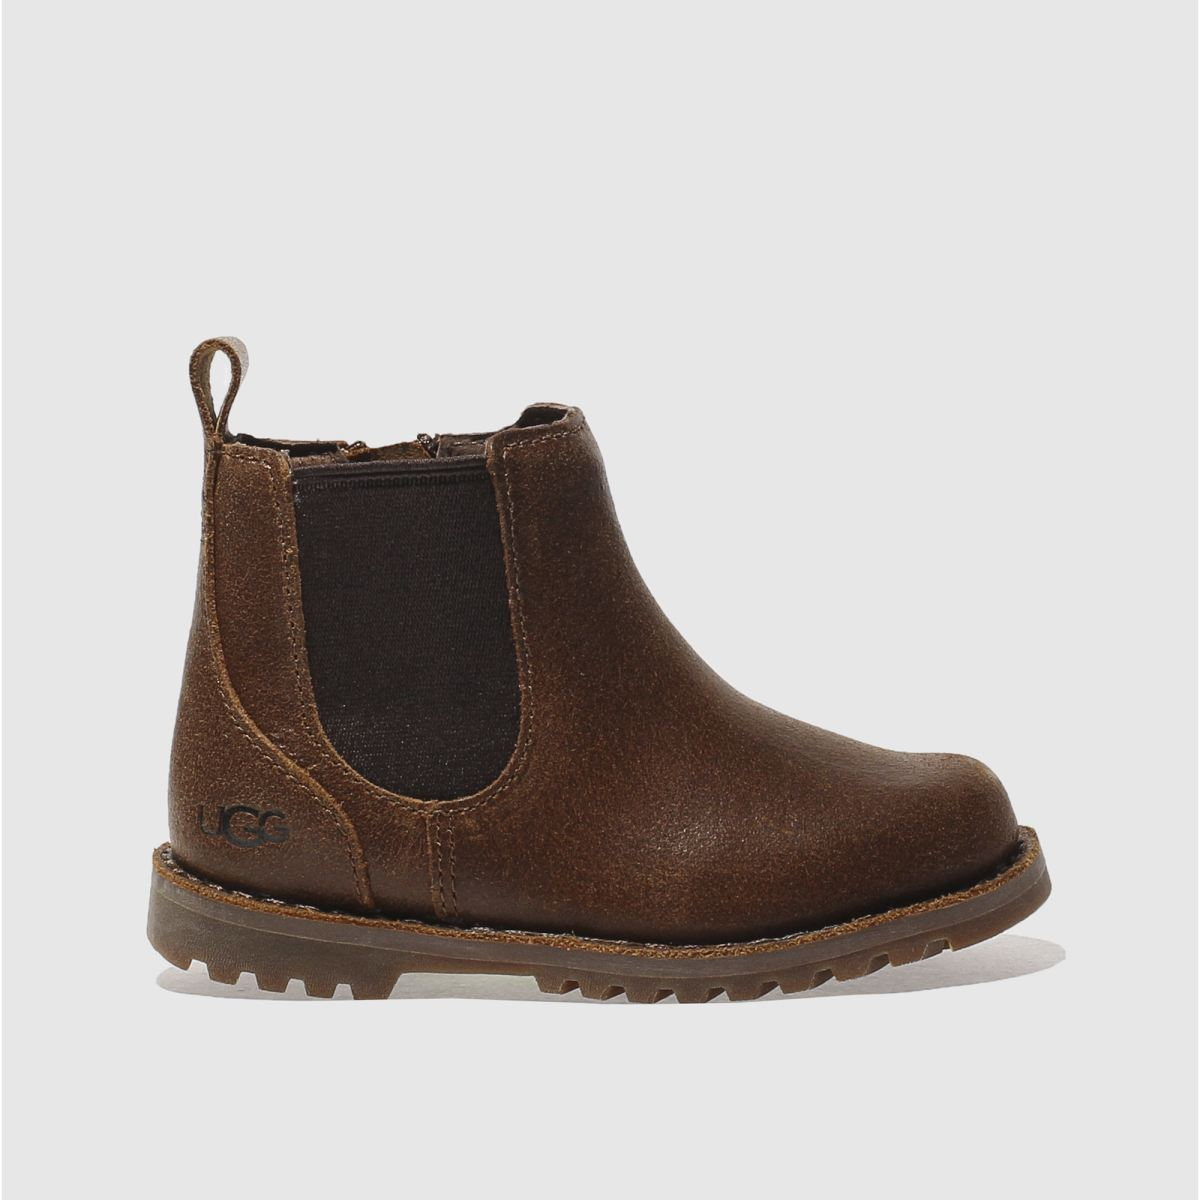 Ugg Brown Callum Unisex Toddler Toddler